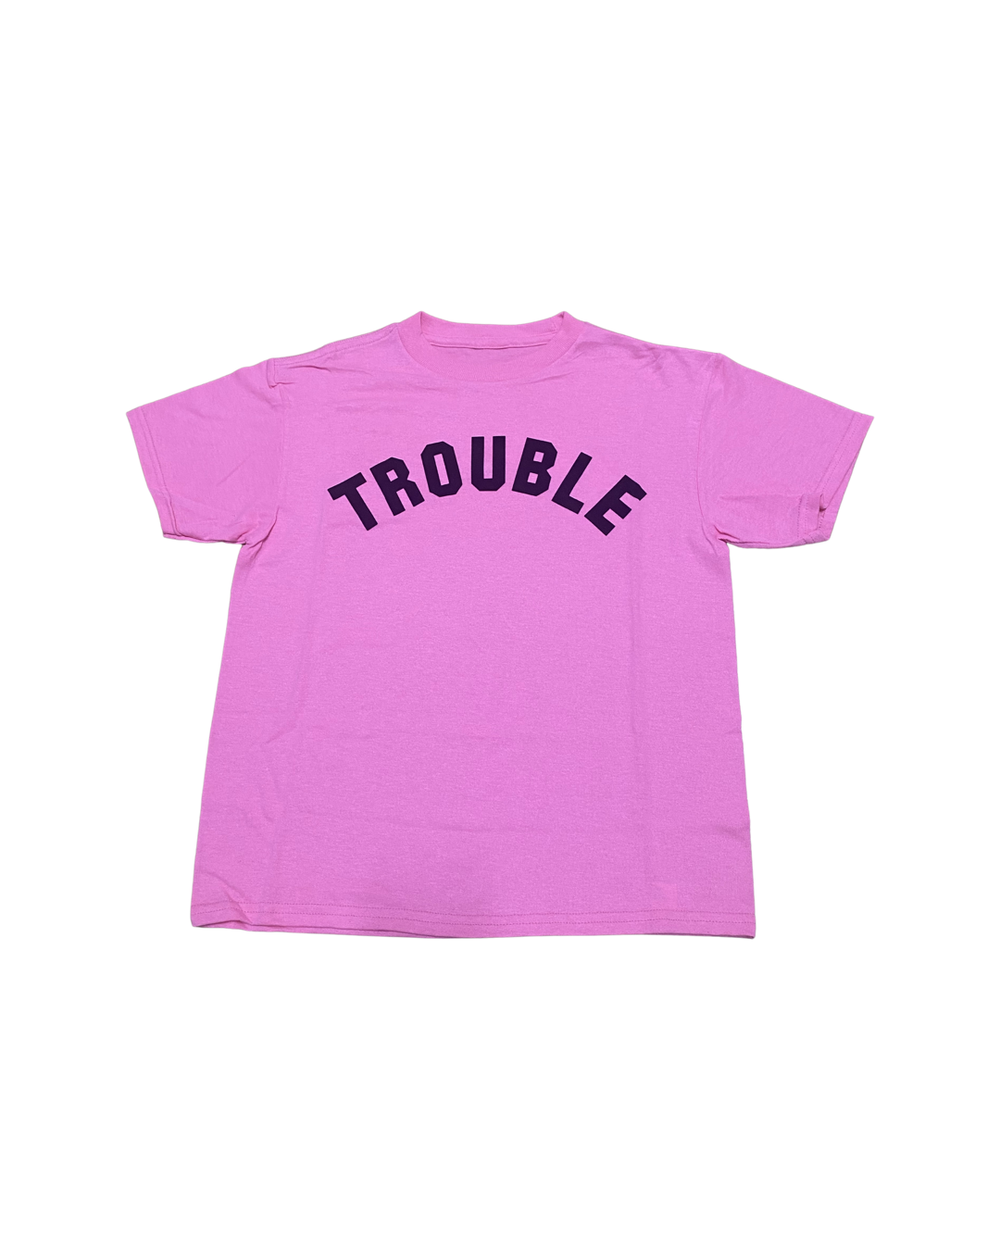 Image of TROUBLE TEE PINK